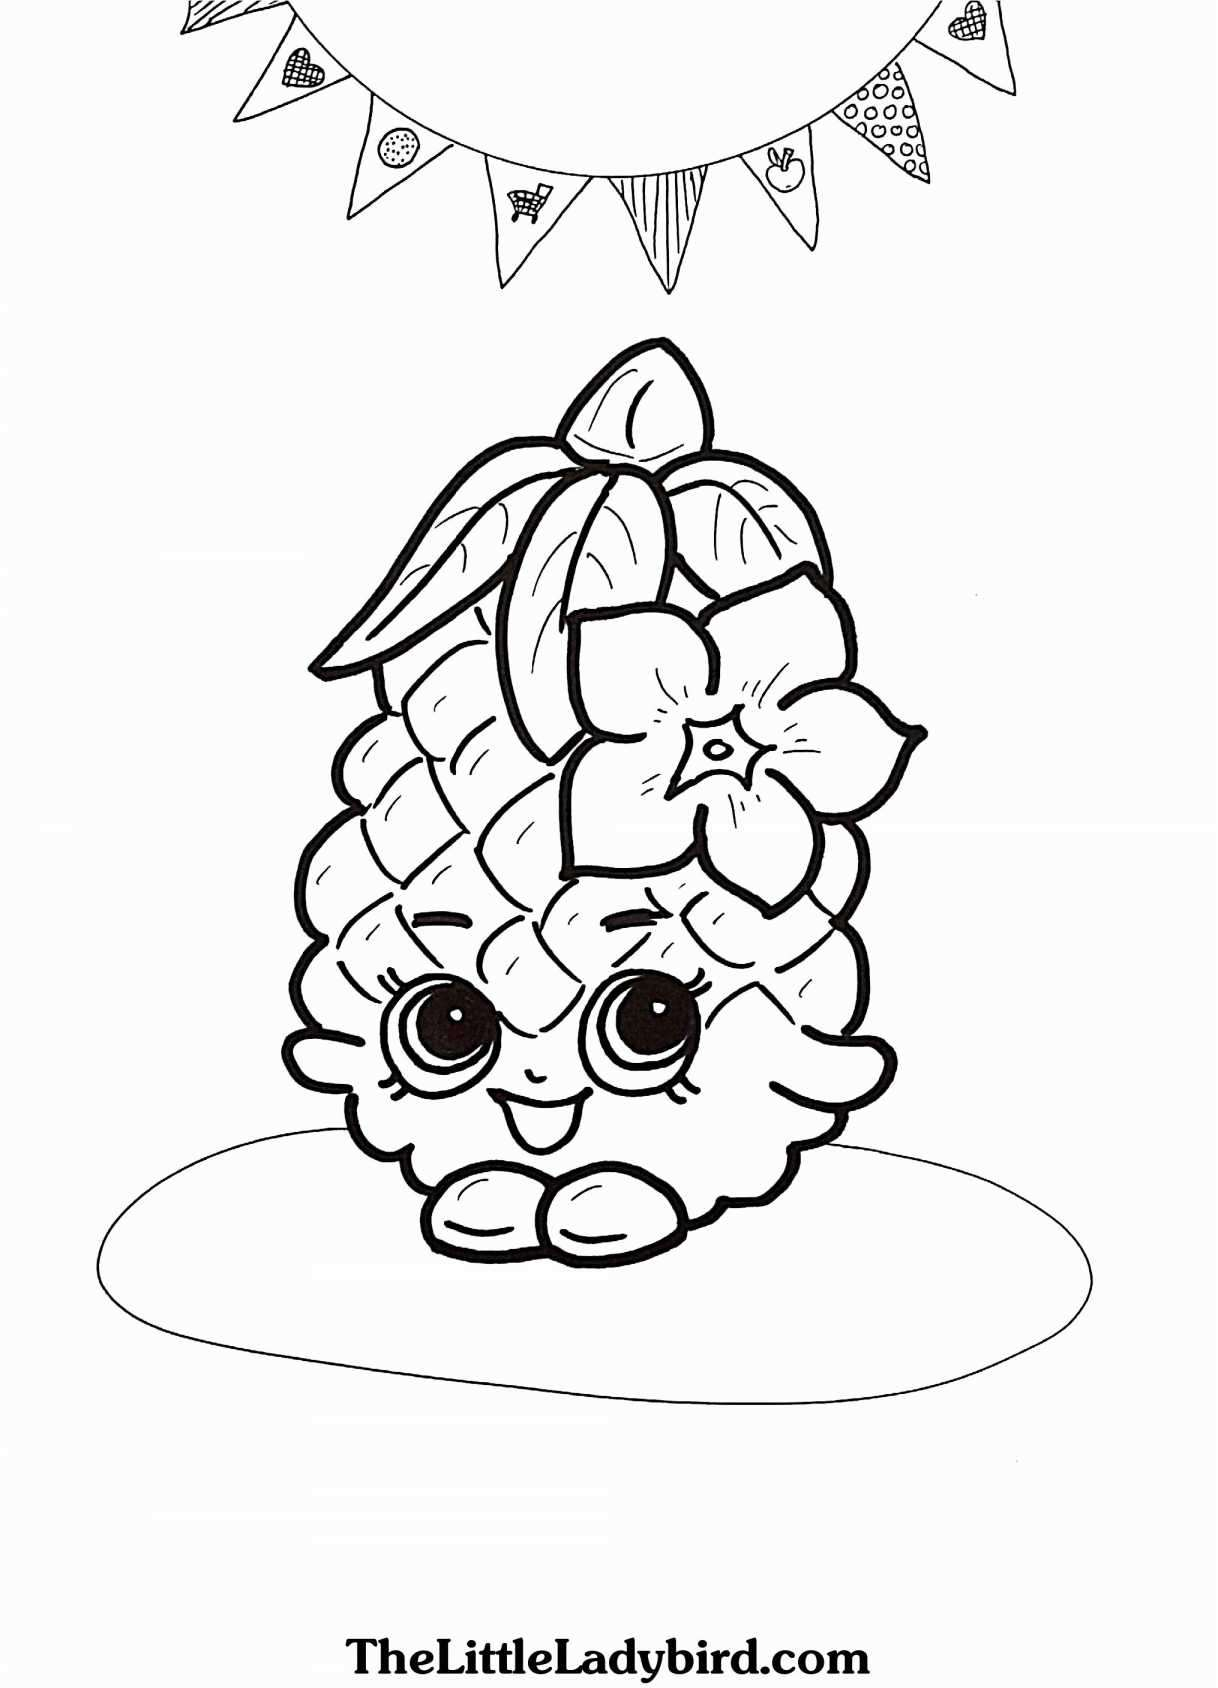 Girl Scout Brownie Coloring Pages  to Print 3p - To print for your project